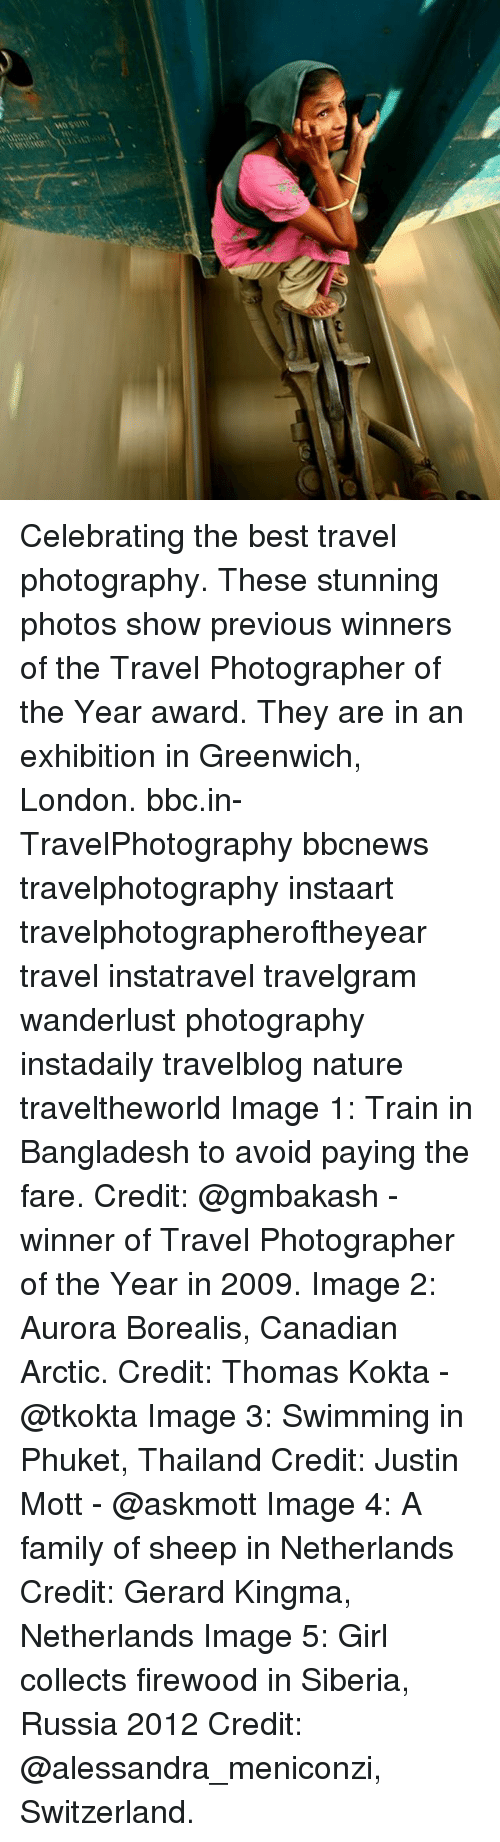 aurora borealis: Celebrating the best travel photography. These stunning photos show previous winners of the Travel Photographer of the Year award. They are in an exhibition in Greenwich, London. bbc.in-TravelPhotography bbcnews travelphotography instaart travelphotographeroftheyear travel instatravel travelgram wanderlust photography instadaily travelblog nature traveltheworld Image 1: Train in Bangladesh to avoid paying the fare. Credit: @gmbakash - winner of Travel Photographer of the Year in 2009. Image 2: Aurora Borealis, Canadian Arctic. Credit: Thomas Kokta - @tkokta Image 3: Swimming in Phuket, Thailand Credit: Justin Mott - @askmott Image 4: A family of sheep in Netherlands Credit: Gerard Kingma, Netherlands Image 5: Girl collects firewood in Siberia, Russia 2012 Credit: @alessandra_meniconzi, Switzerland.